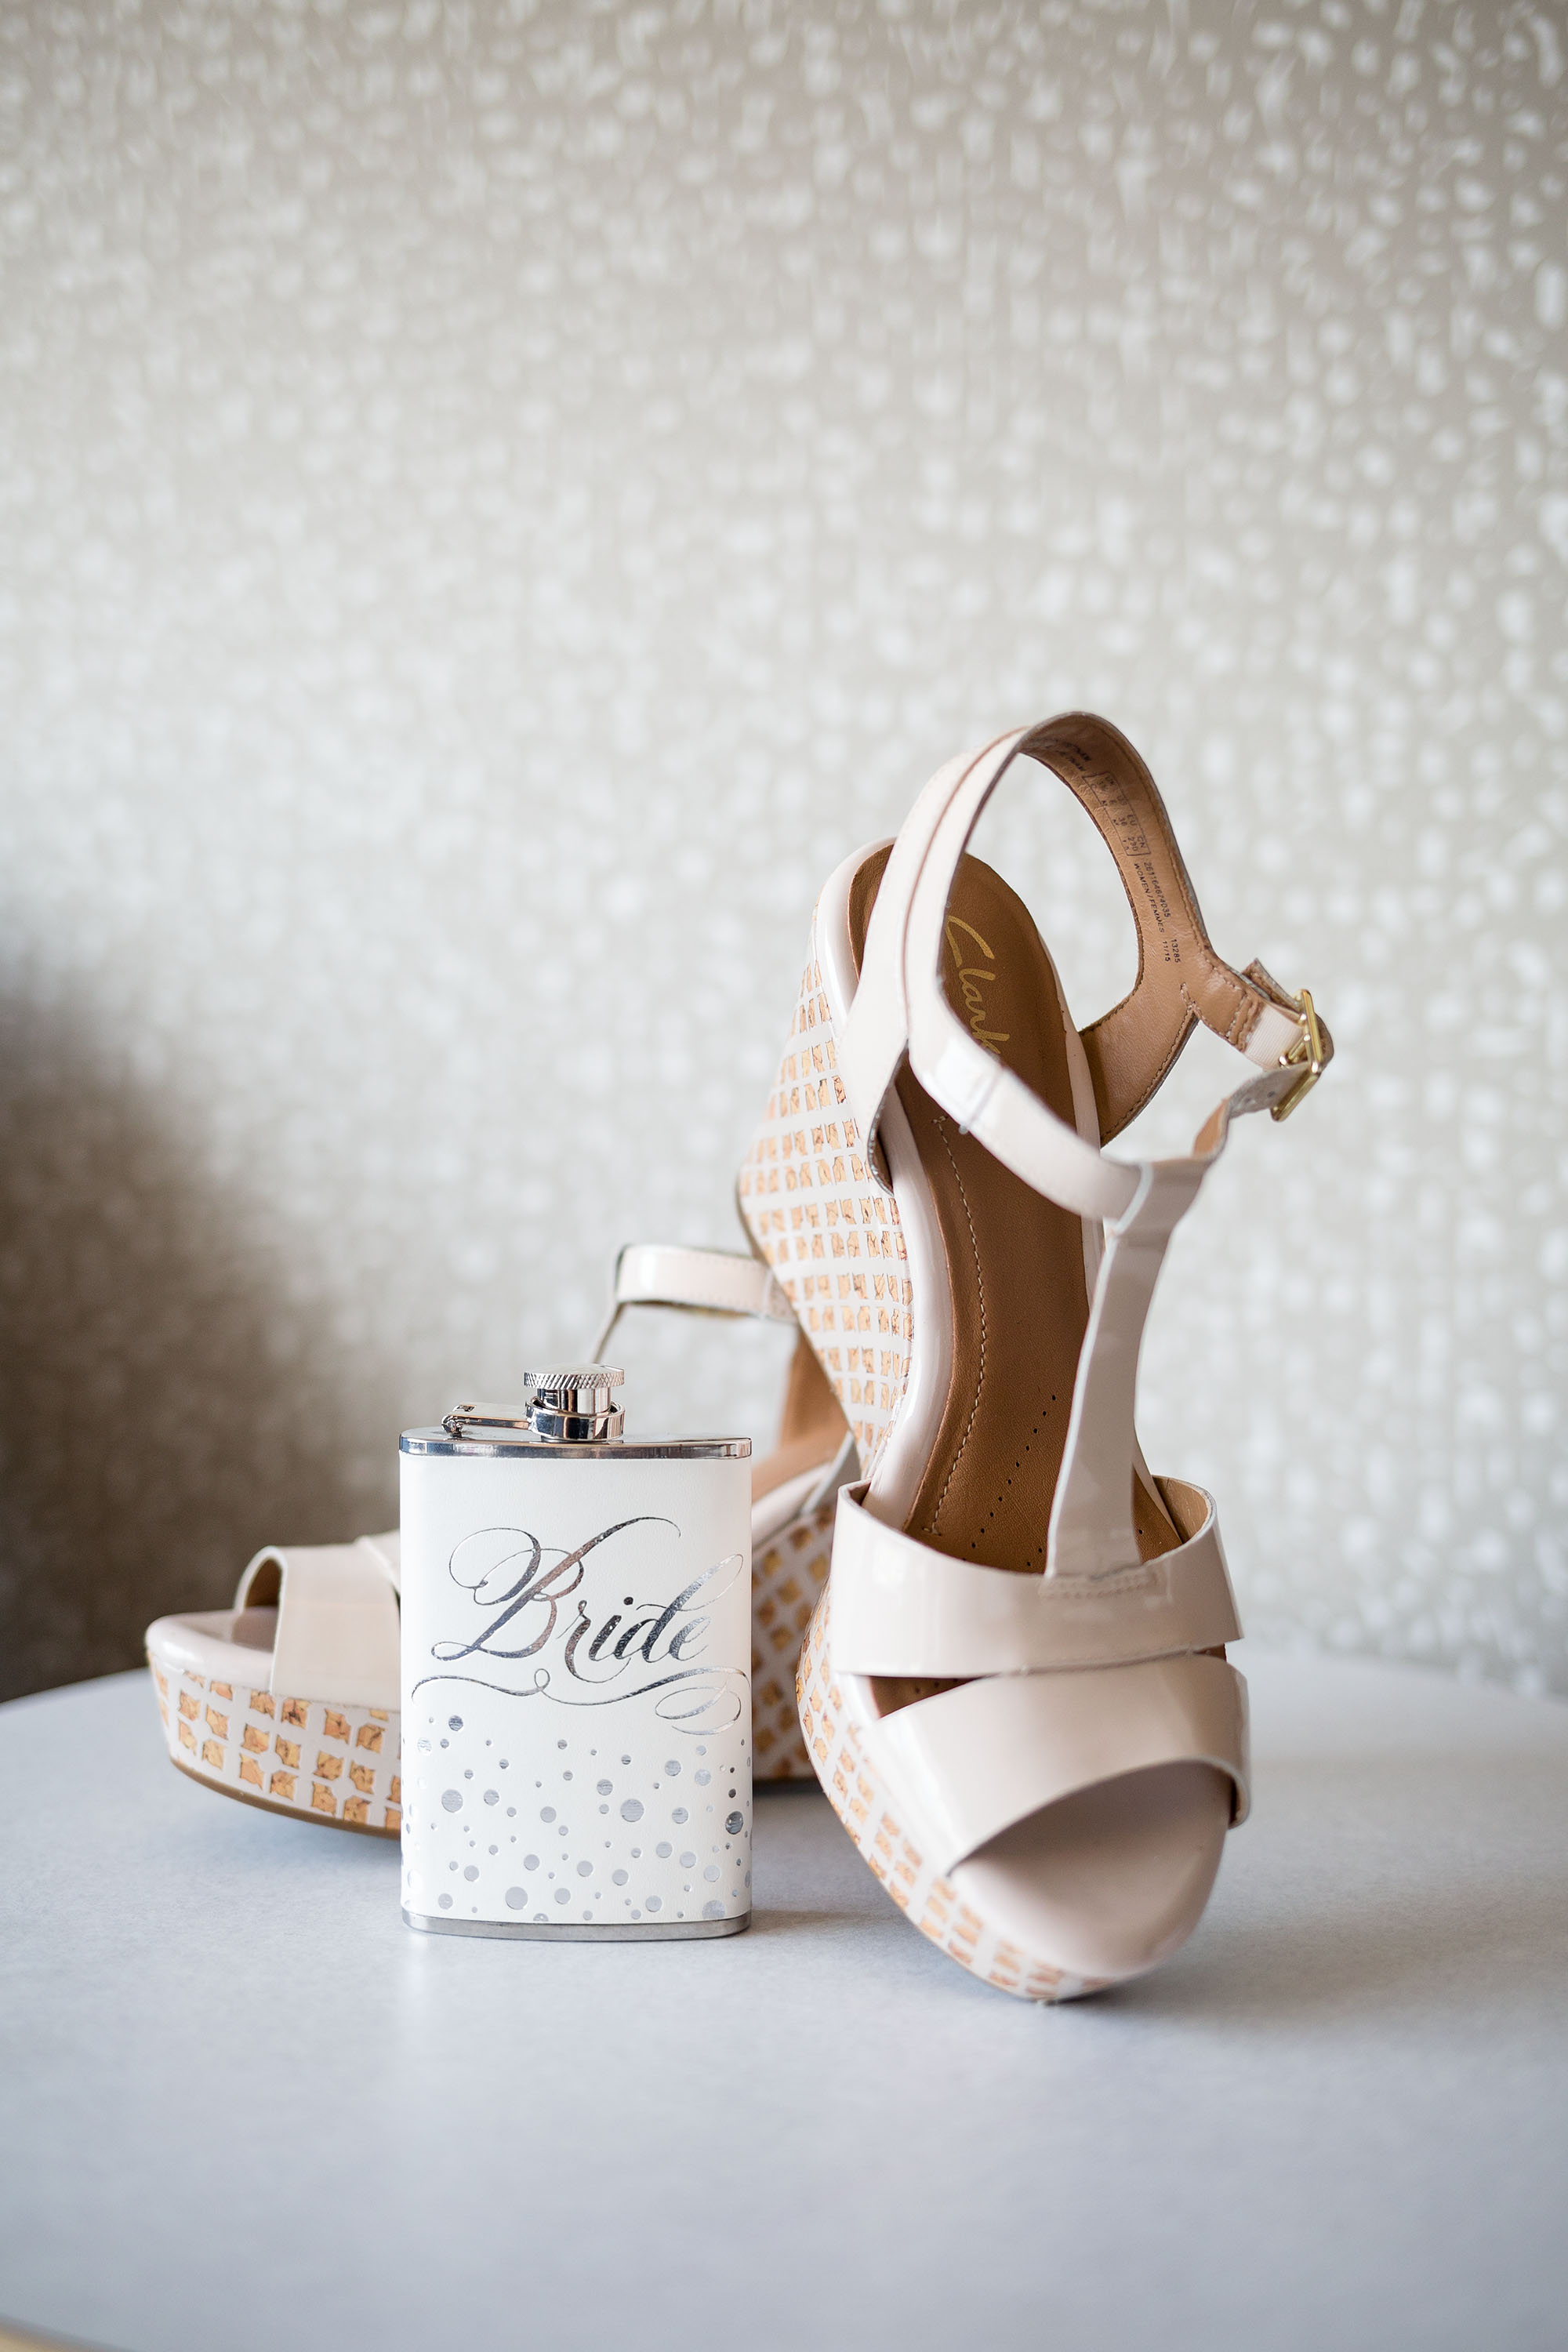 Check out this Bride flask! A perfectly girly accessory for the wedding reception!